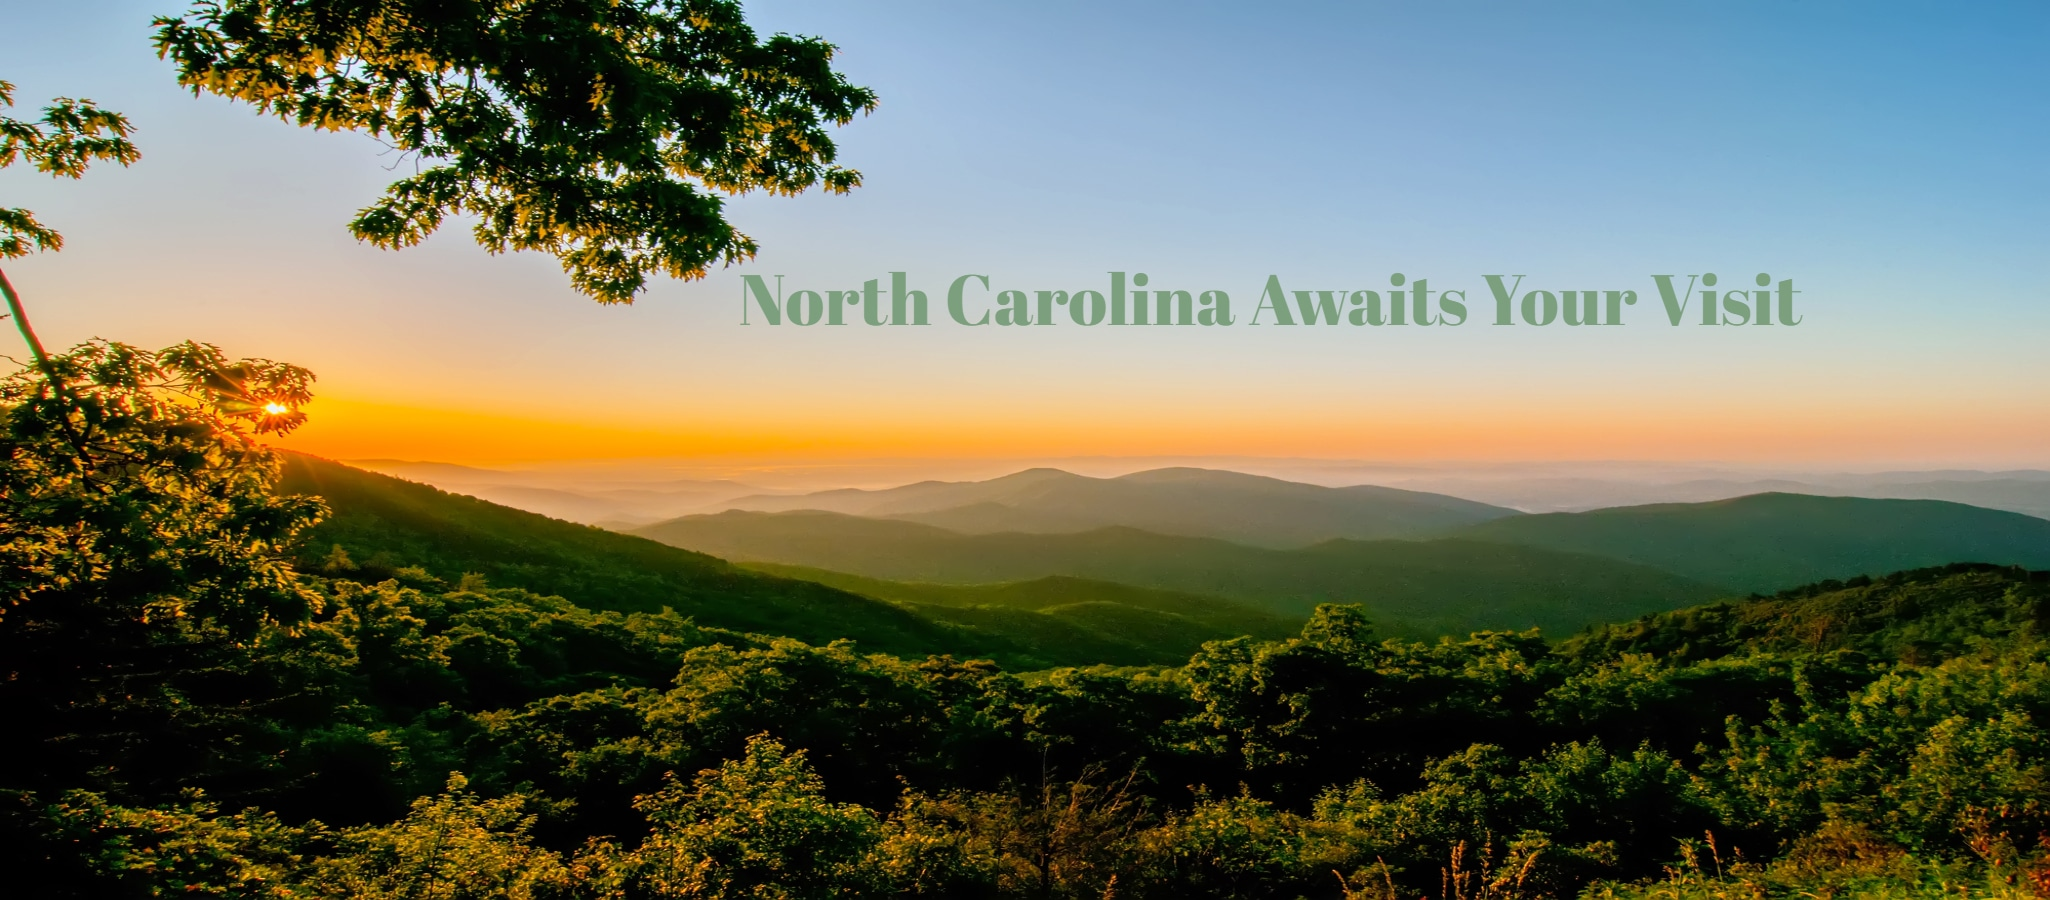 North Carolina Offers Travel Opportunities In The New Decade